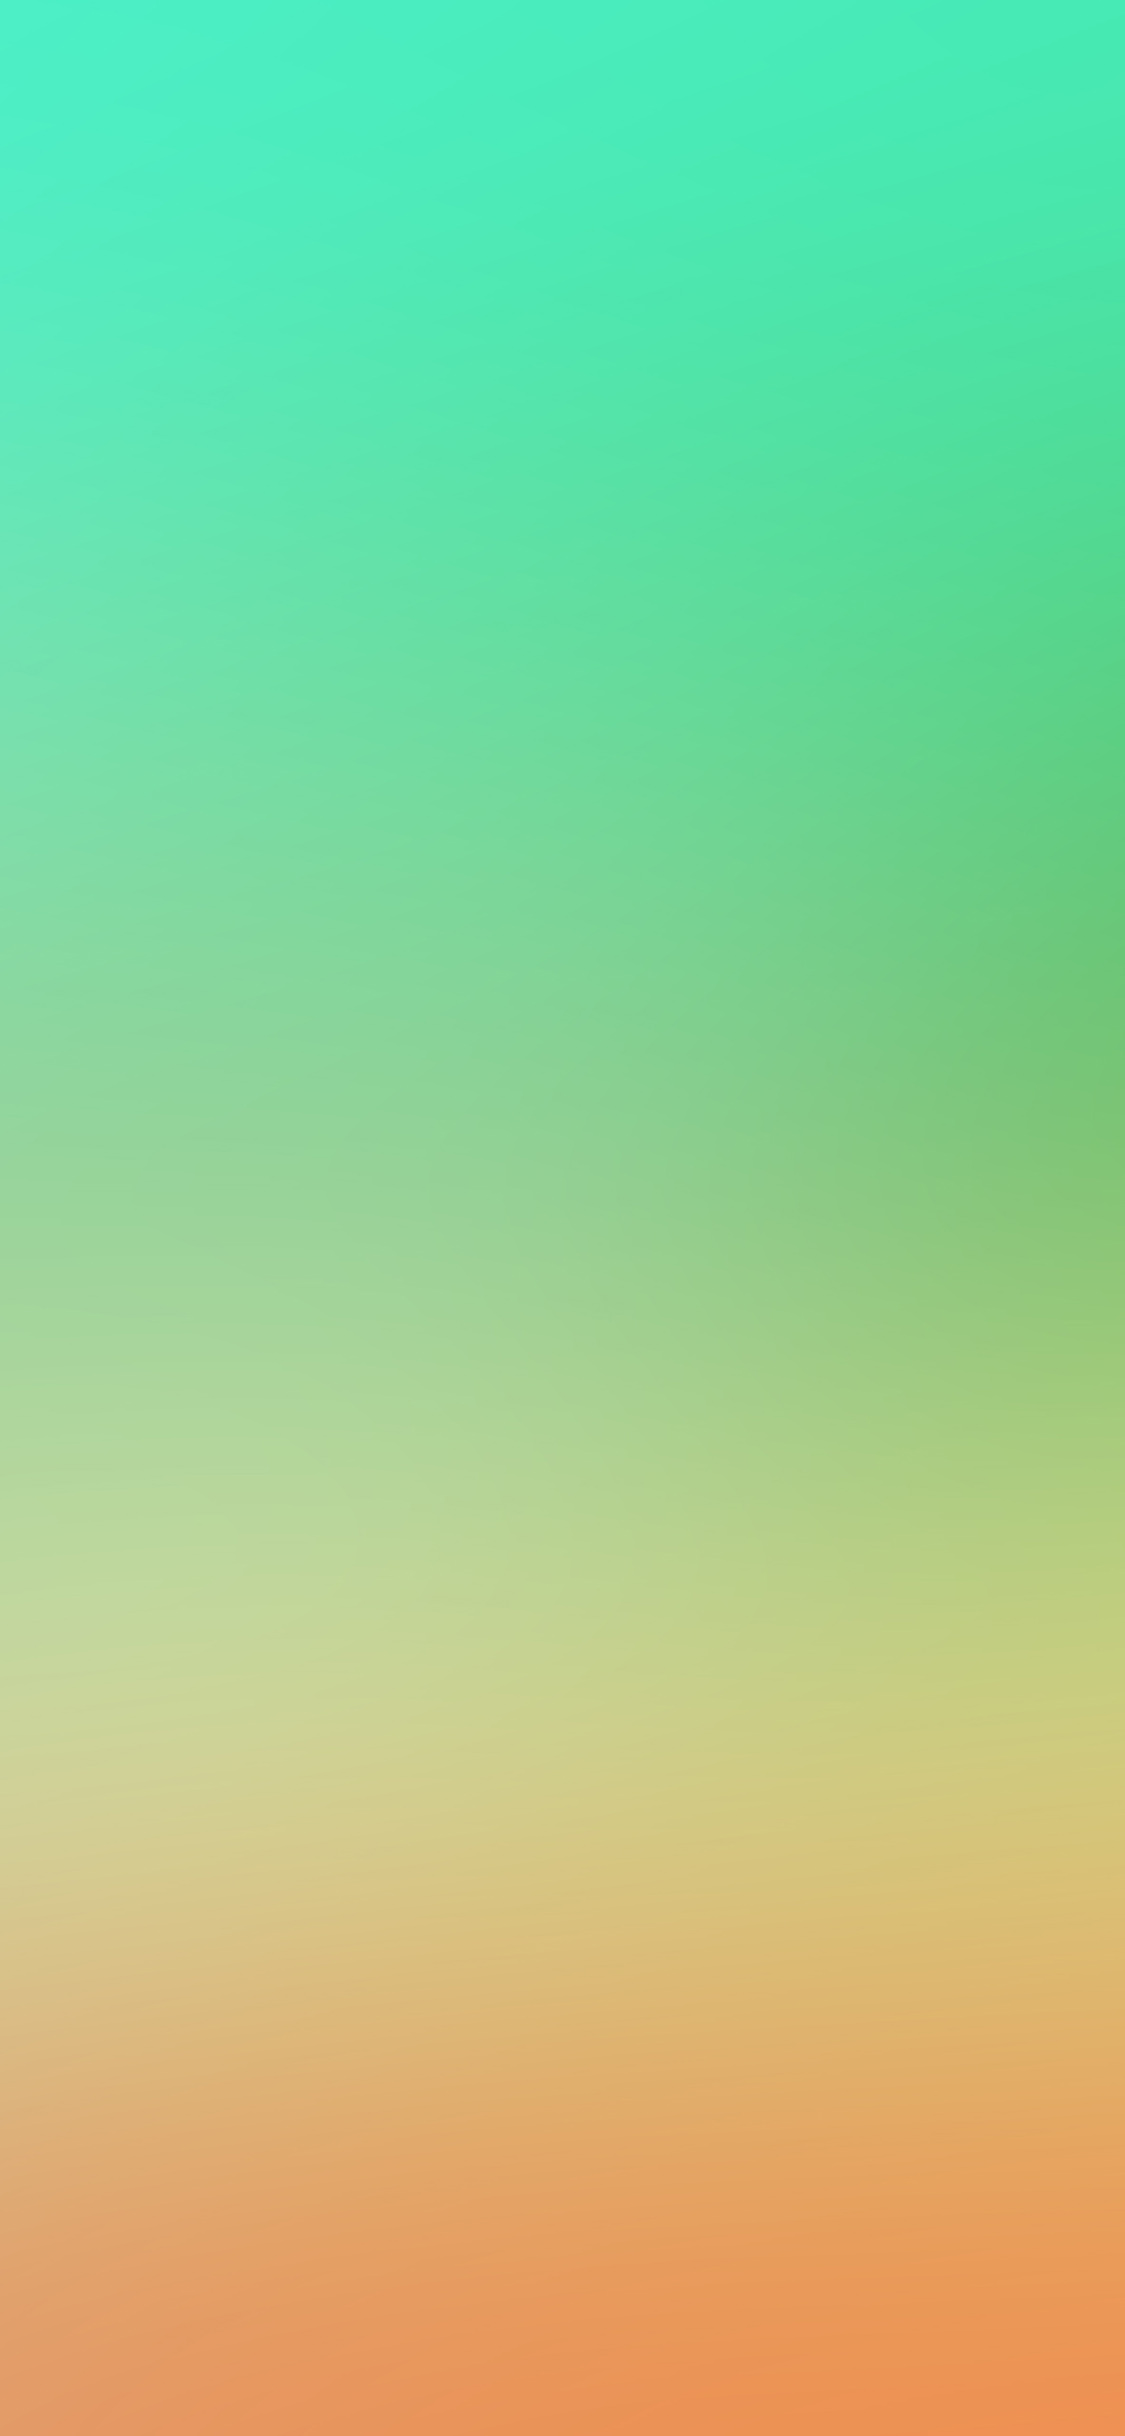 iPhoneXpapers.com-Apple-iPhone-wallpaper-sl29-soft-green-orange-blur-gradation